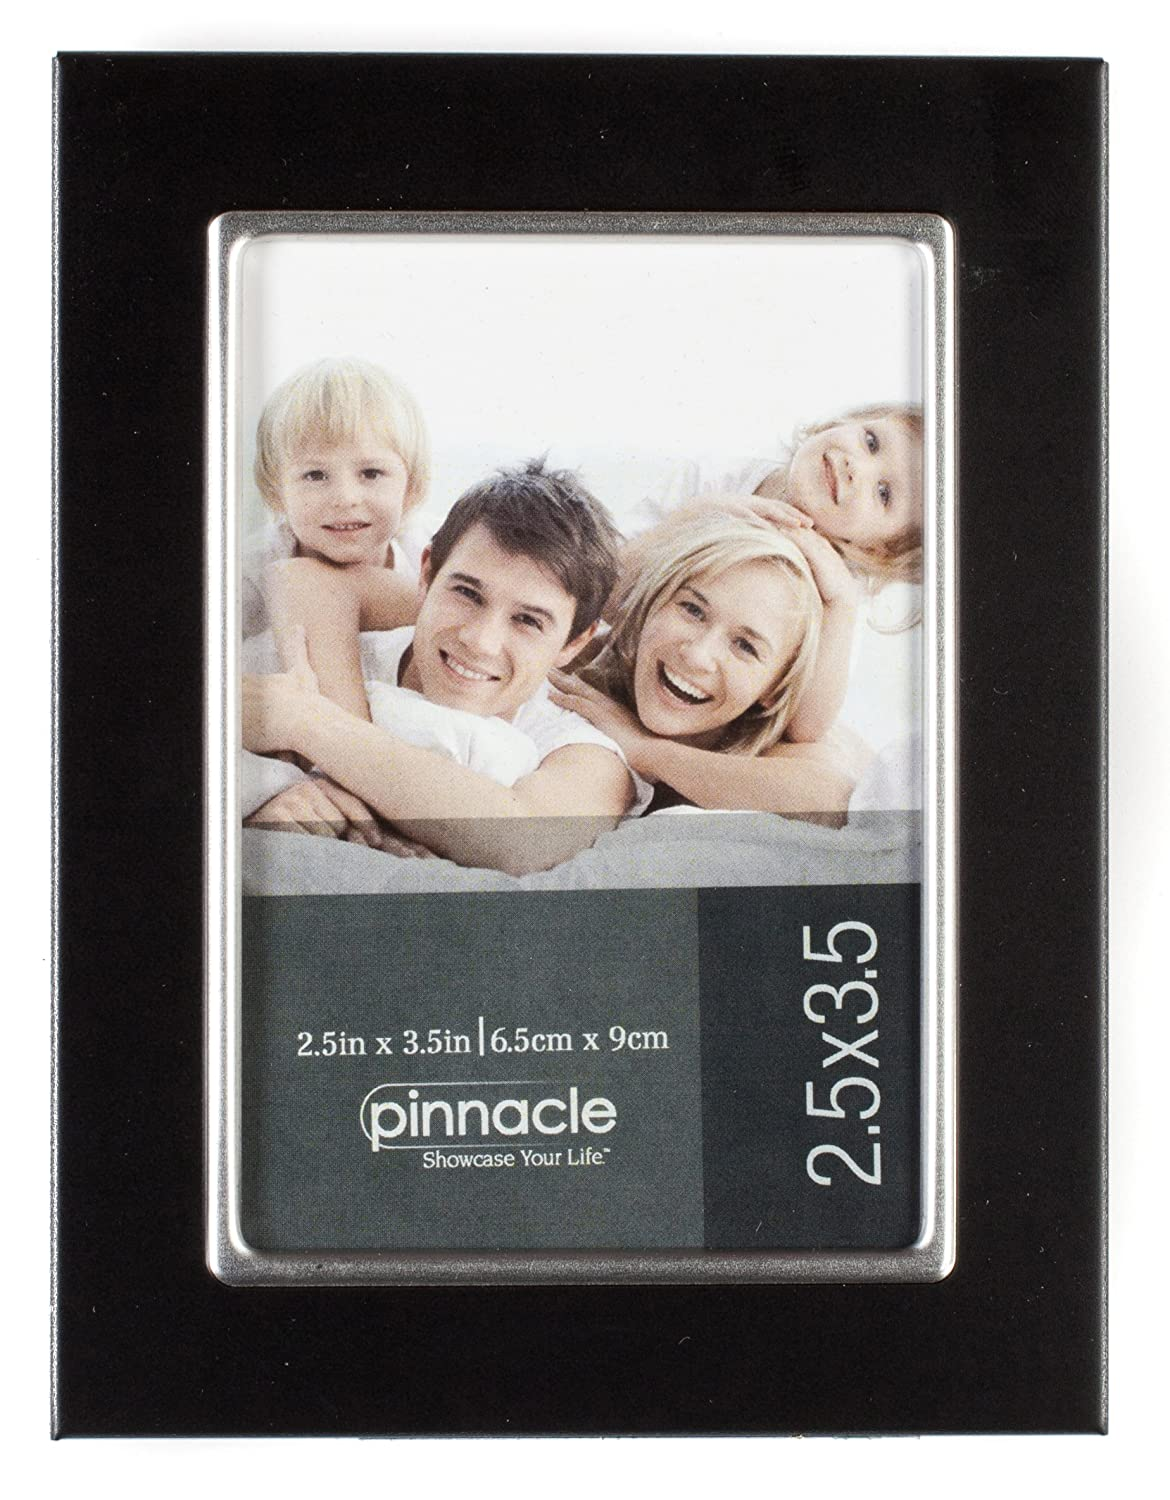 Amazon pinnacle 25x35 black and silver metal tapletop amazon pinnacle 25x35 black and silver metal tapletop picture frame luxury frames jeuxipadfo Choice Image